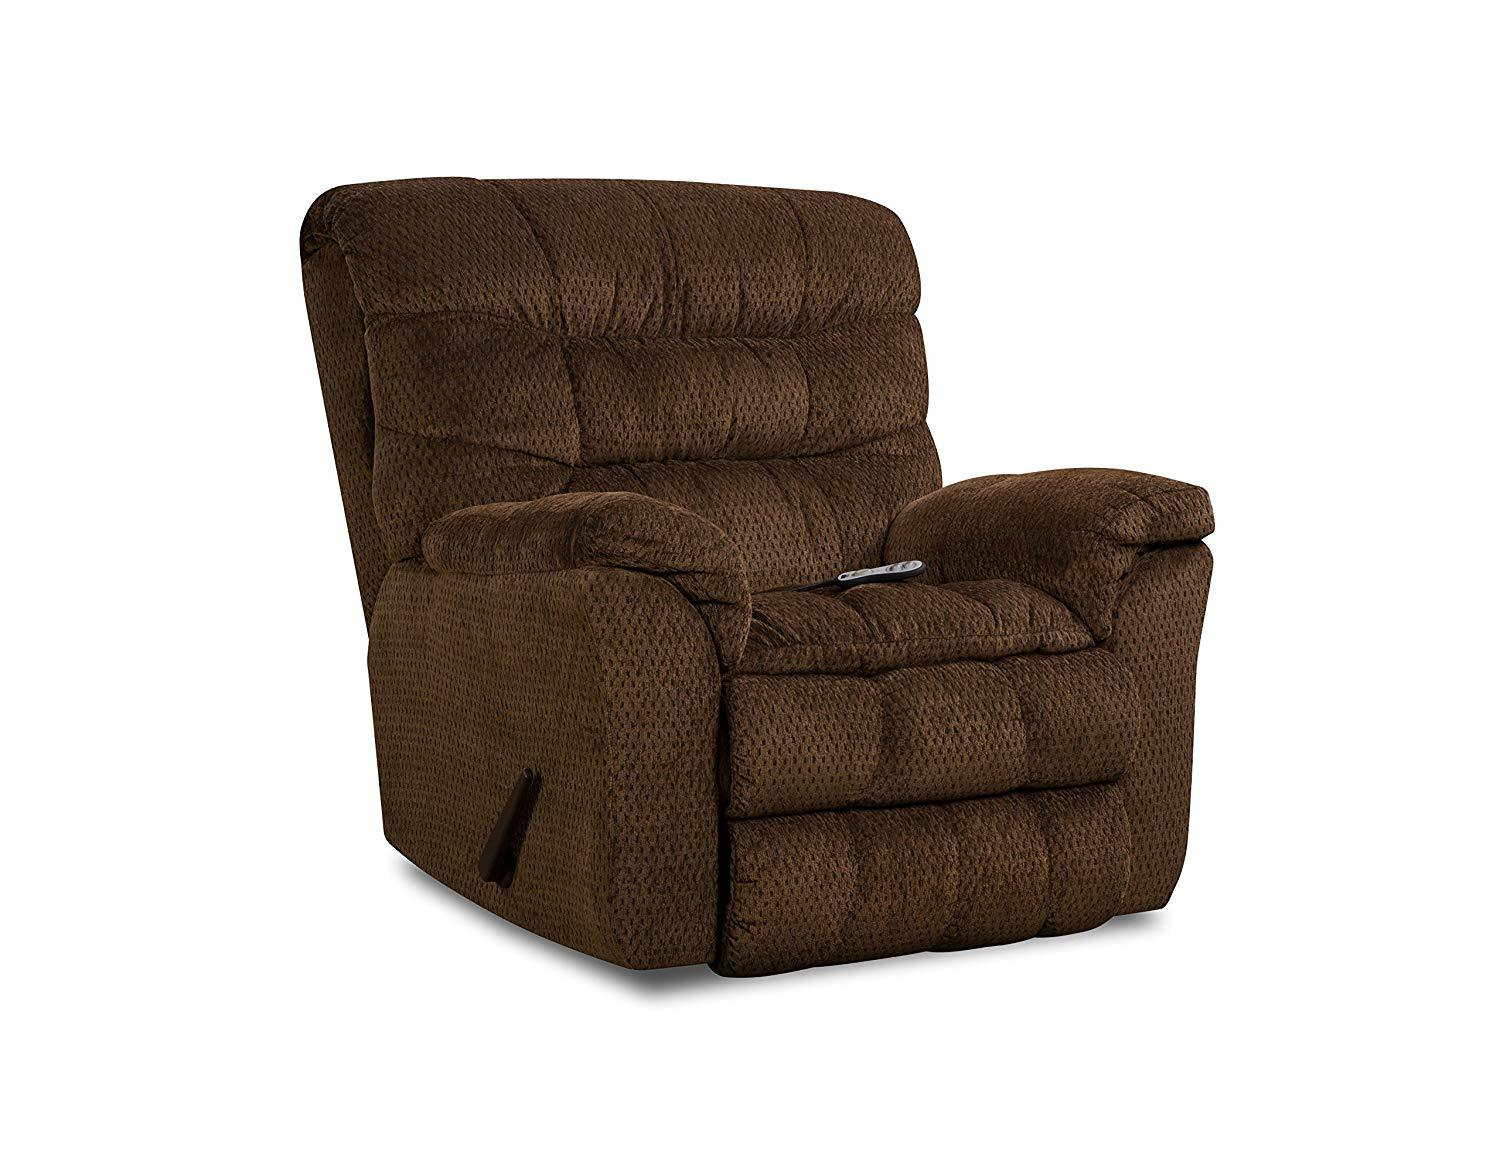 Comprehensive Simmons Recliner Reviews And Comparison Cuddly Home